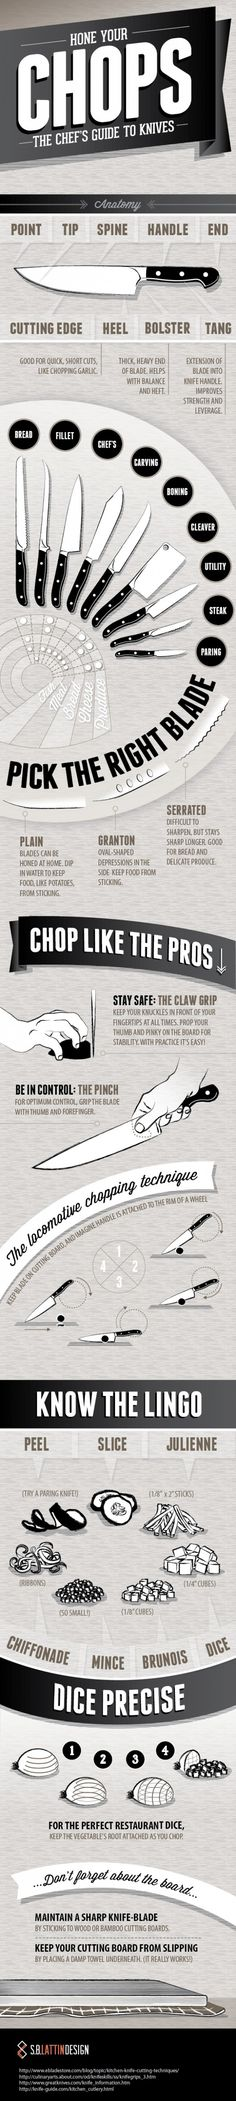 Hone Your Chops: The Chef's Guide to Knives (Infographic)